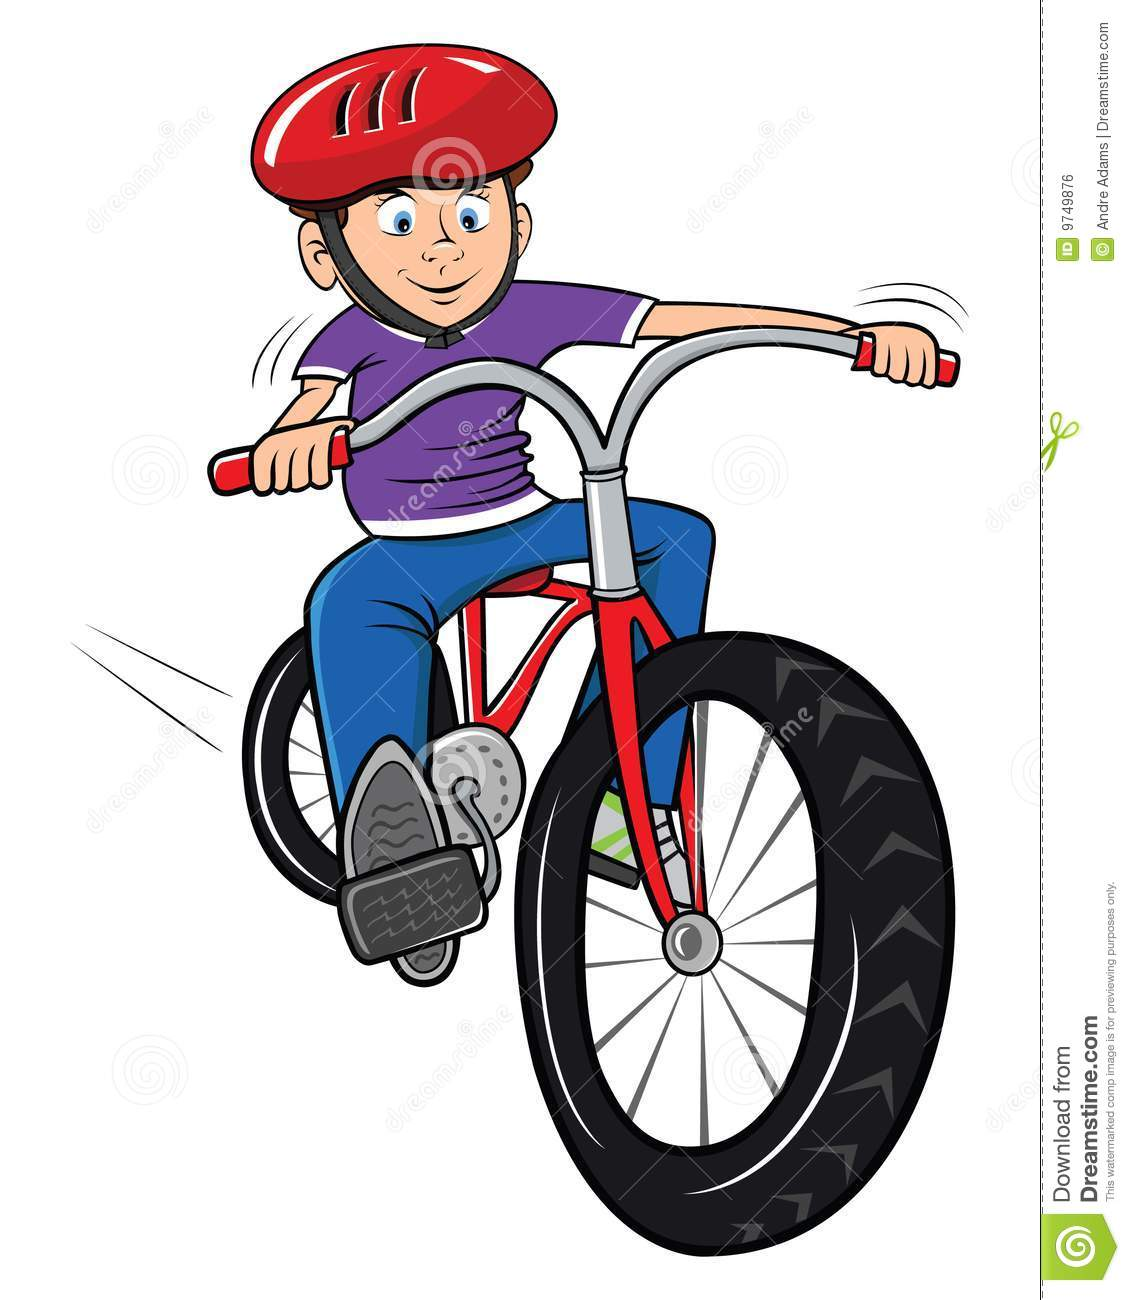 Riding bikes clipart.